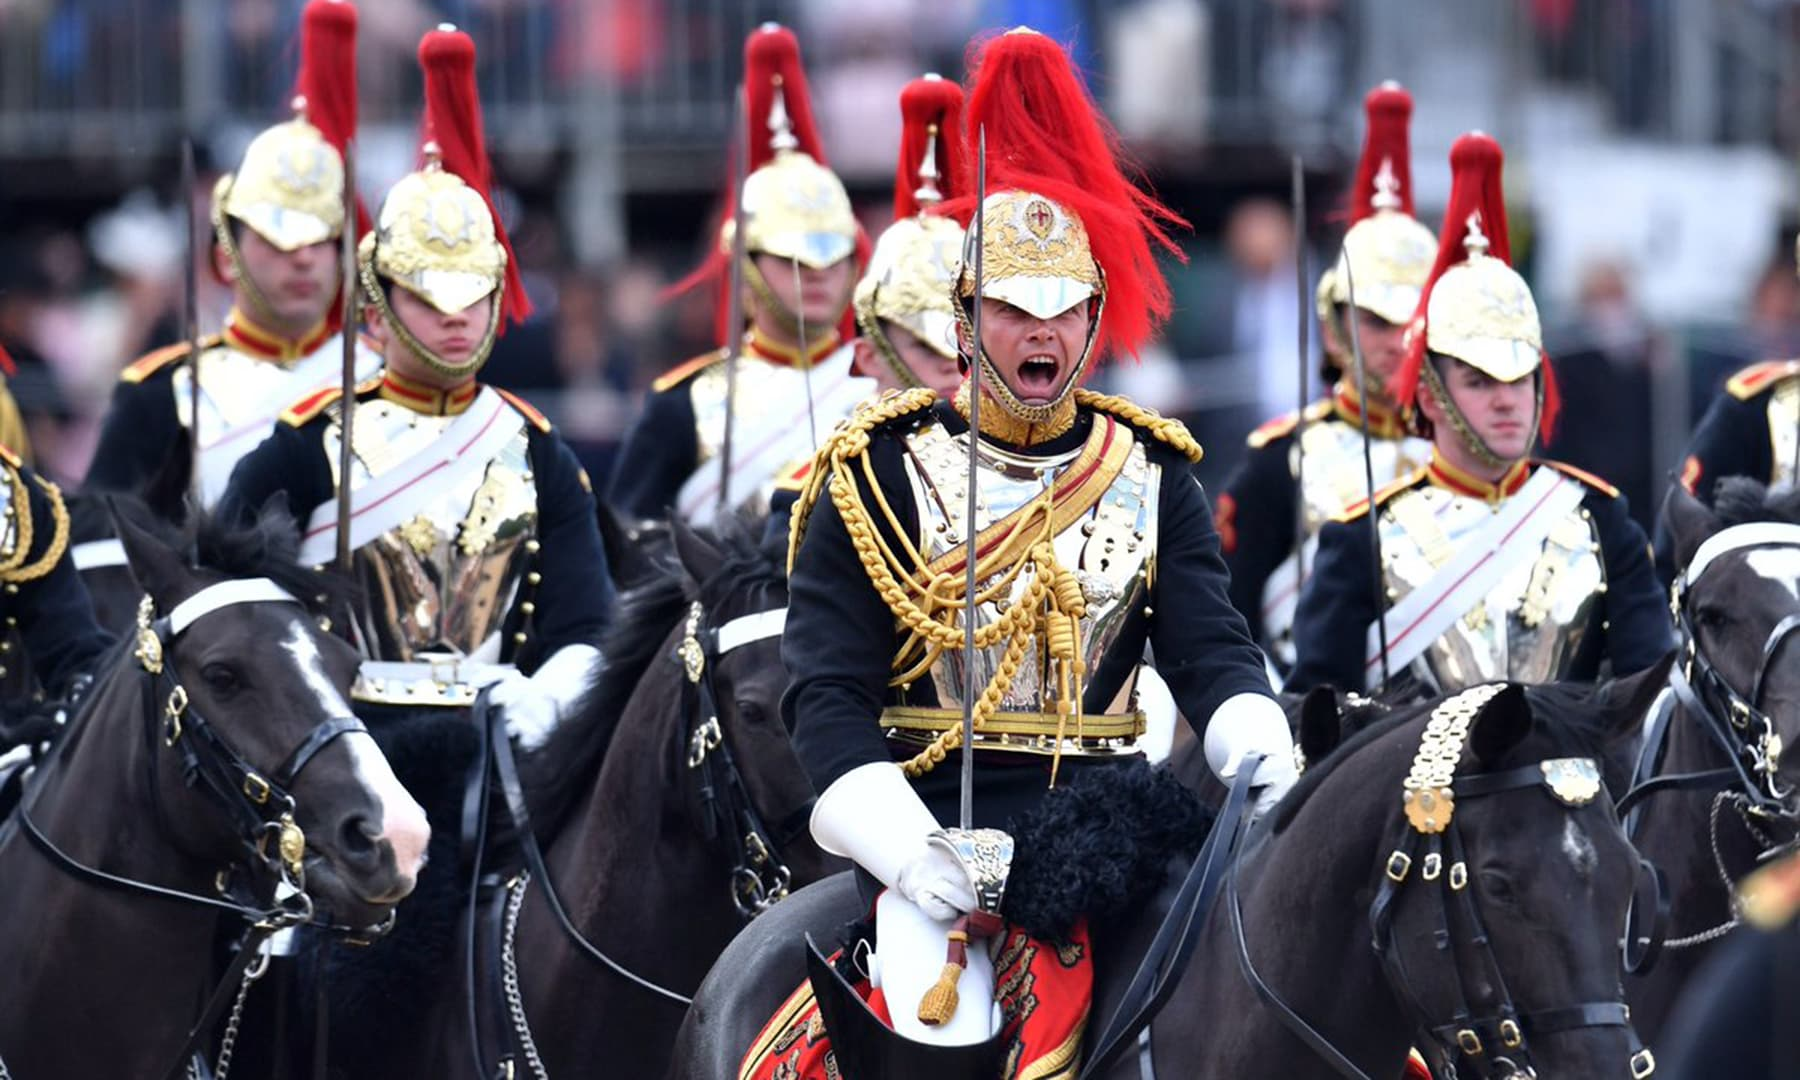 Troopers of the Blues and Royals at the Trooping the Colour parade. — Photo courtesy @RoyalFamily